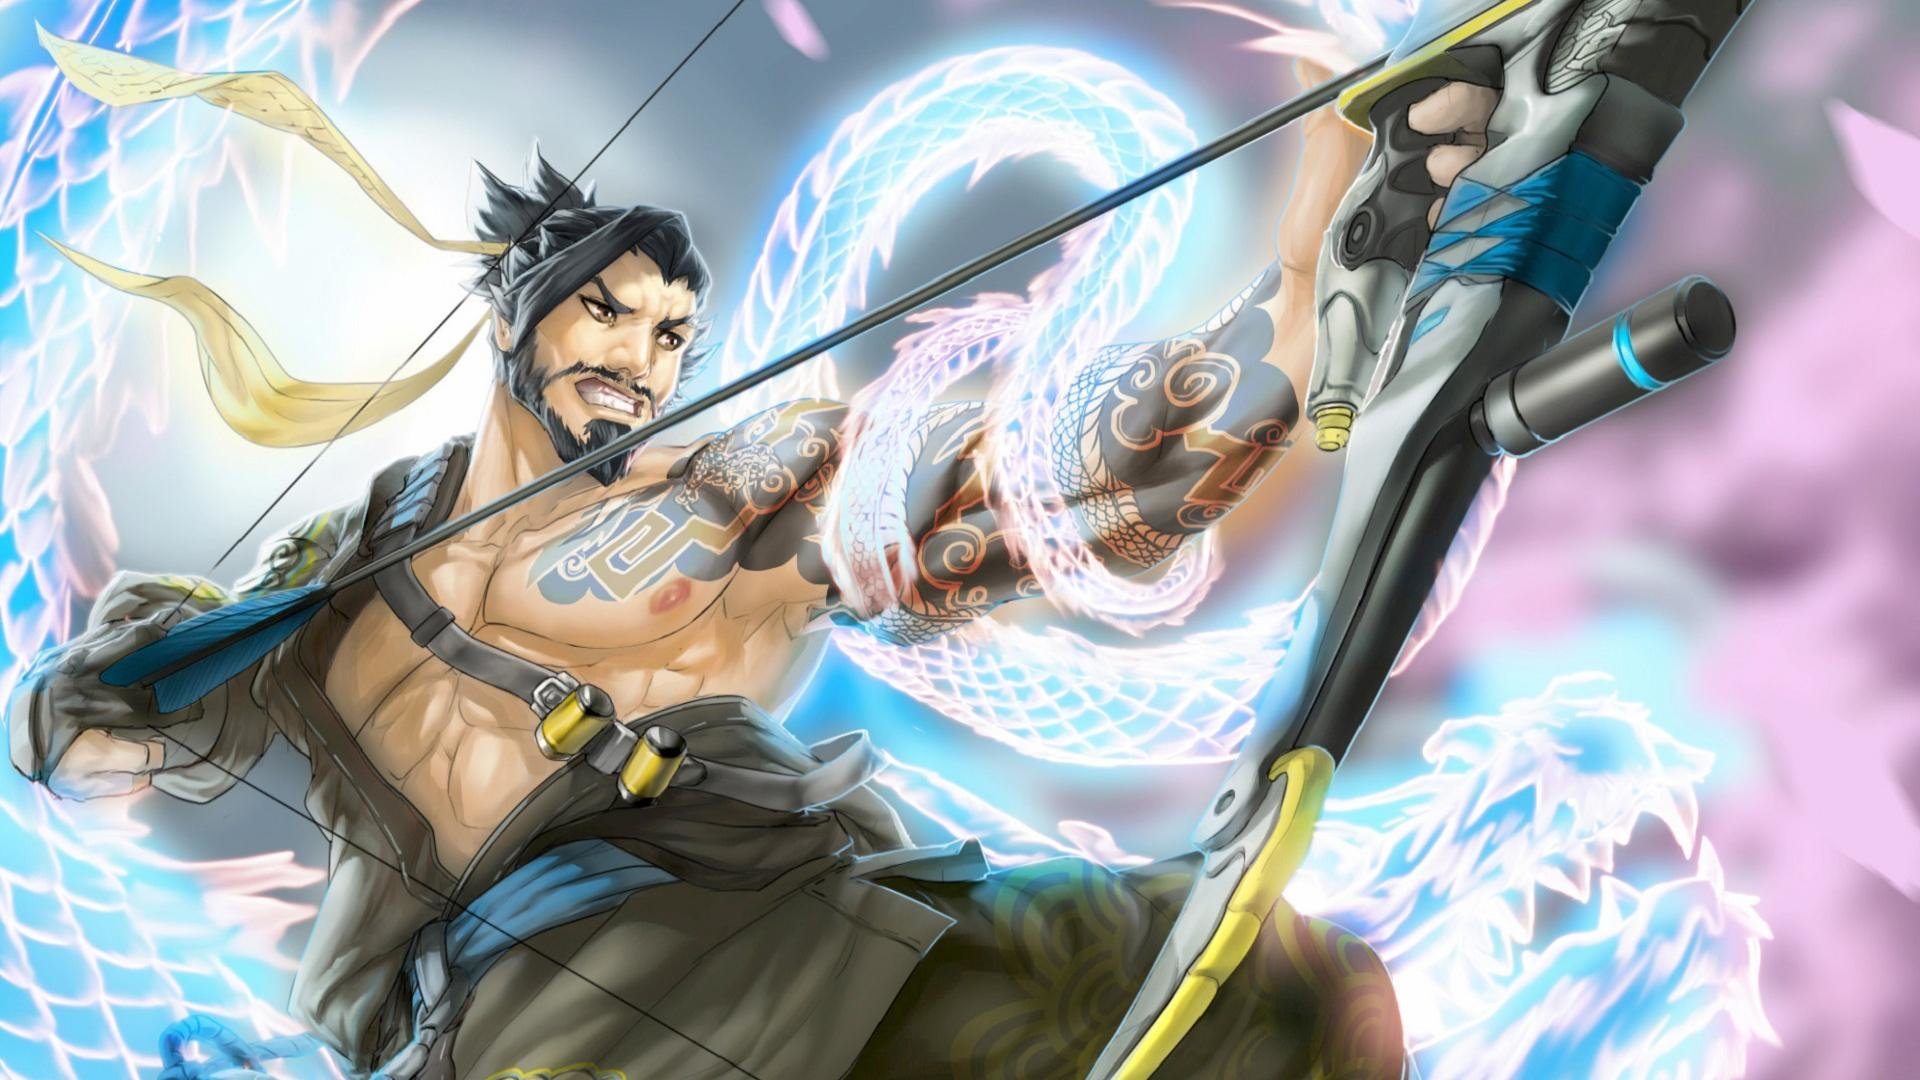 hanzo (overwatch) wallpapers 1920x1080 full hd (1080p) desktop